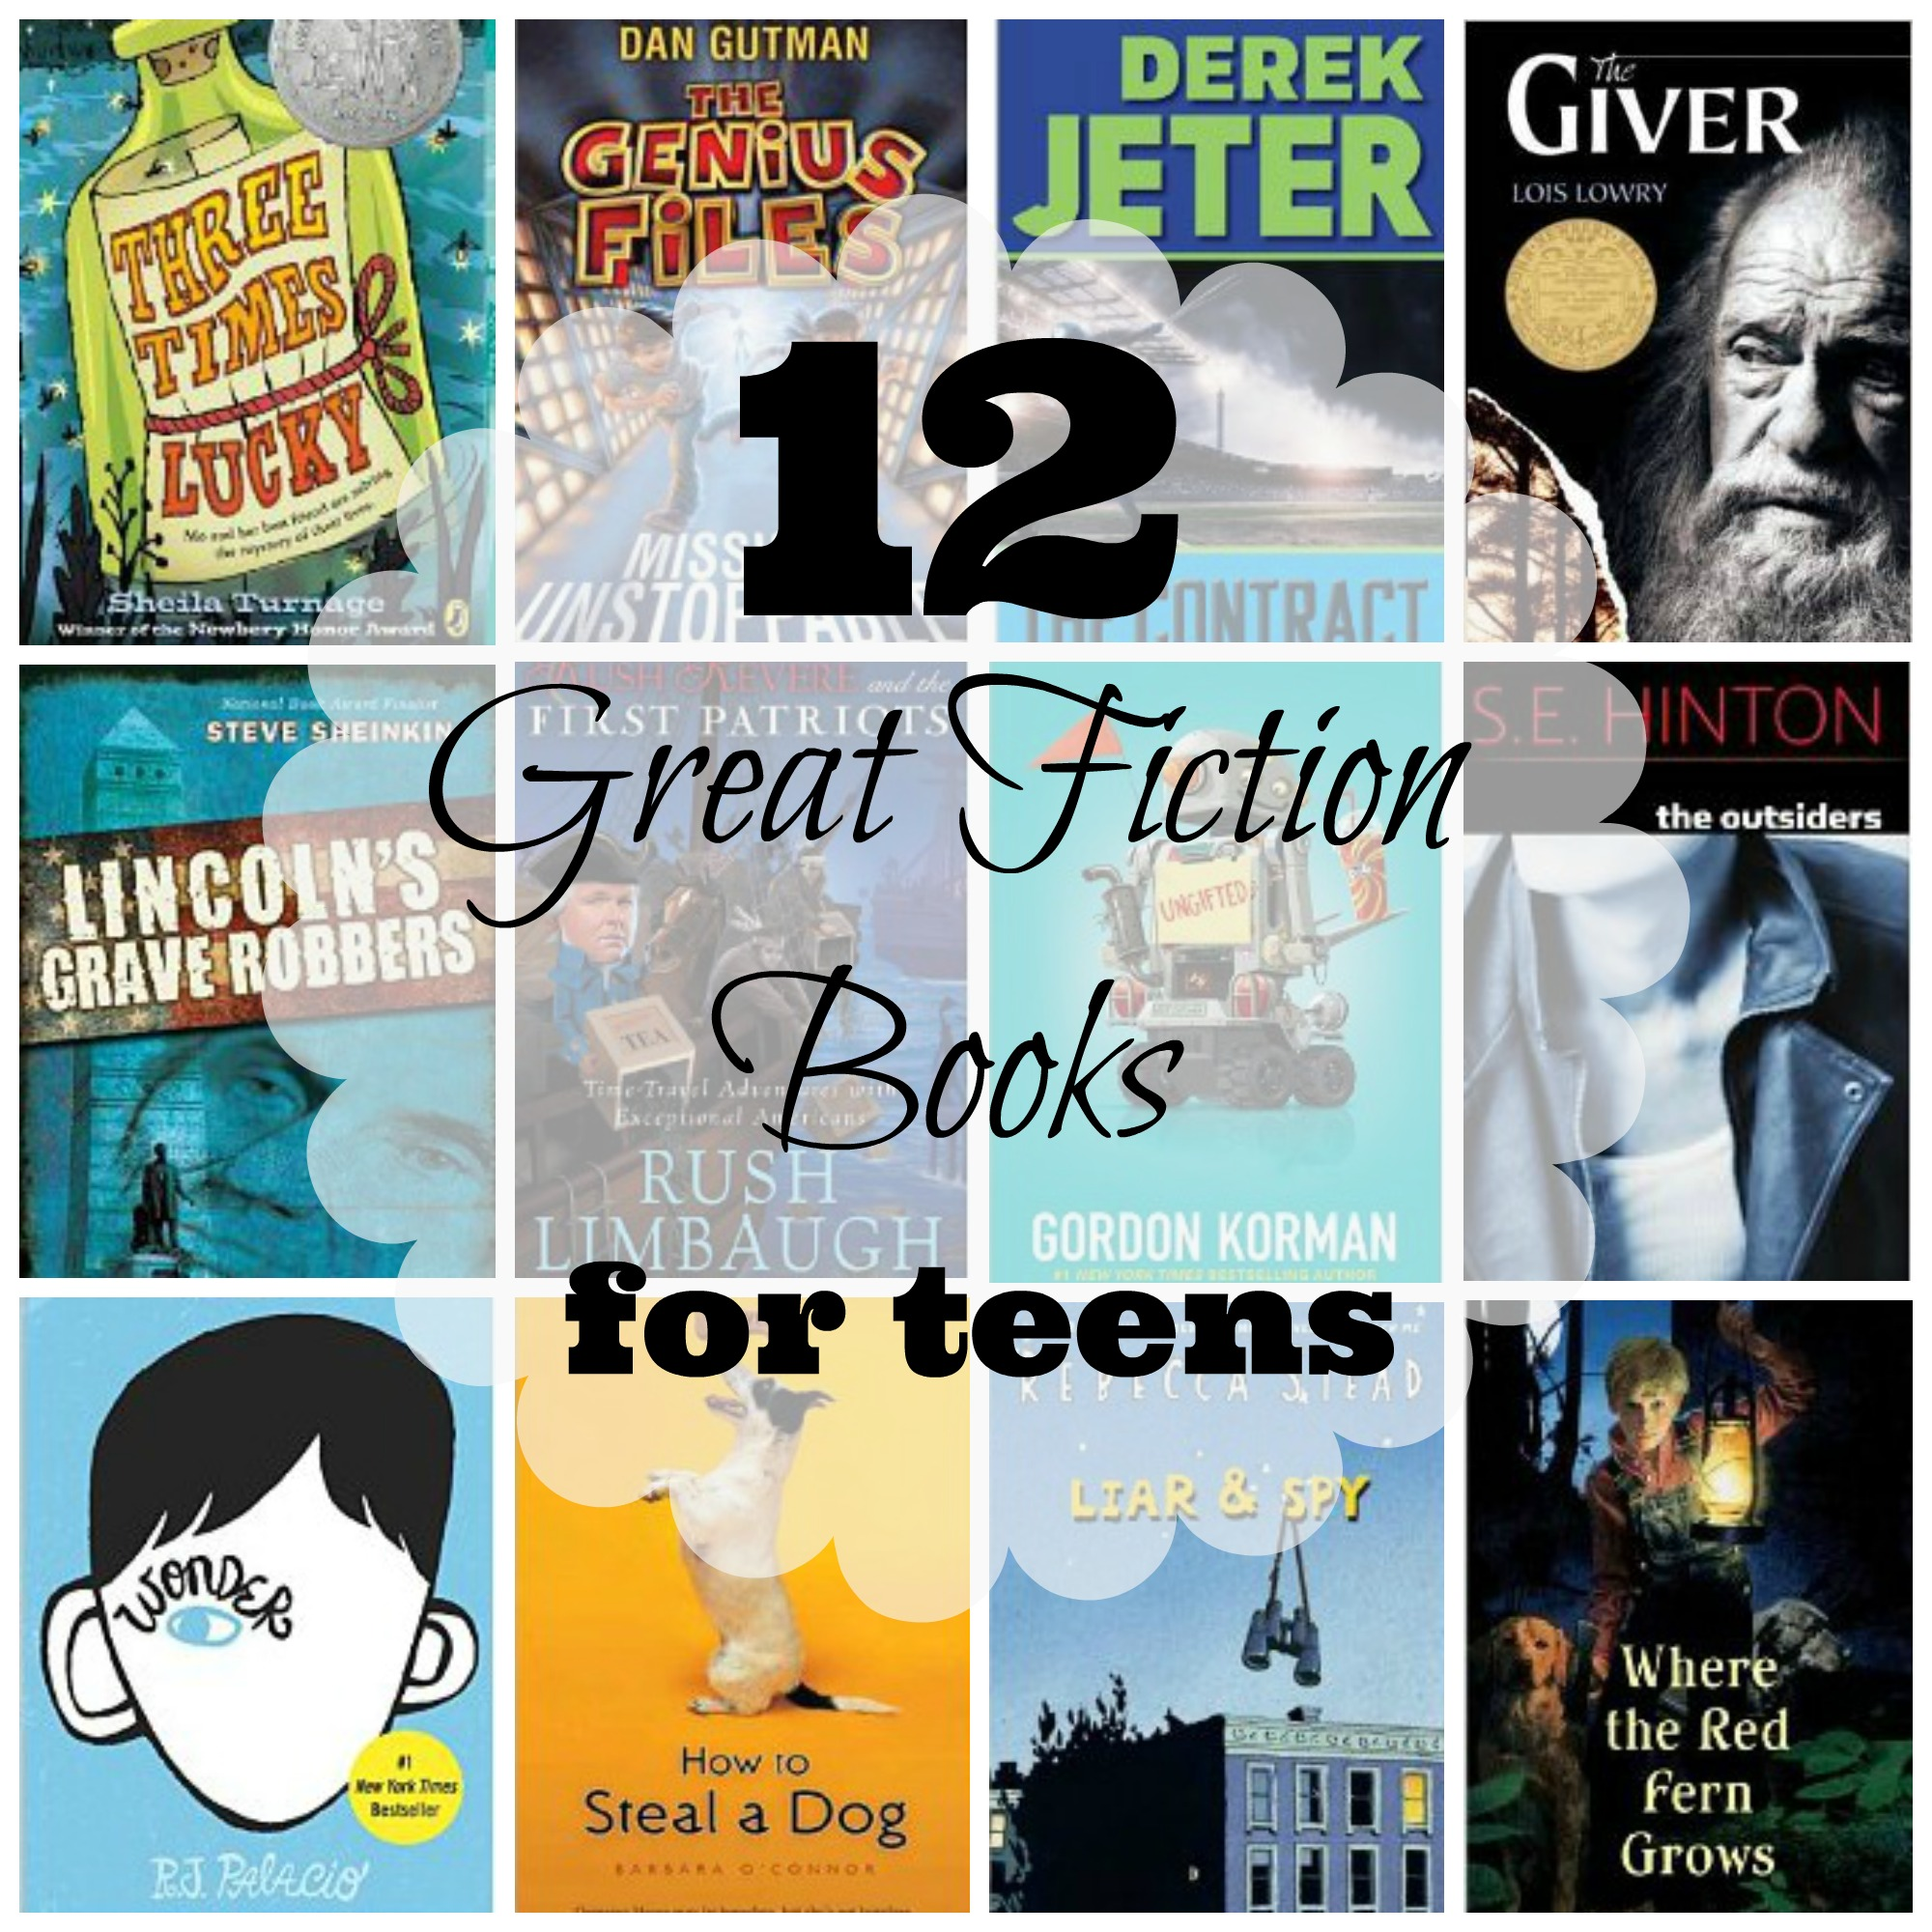 Books for teens 42